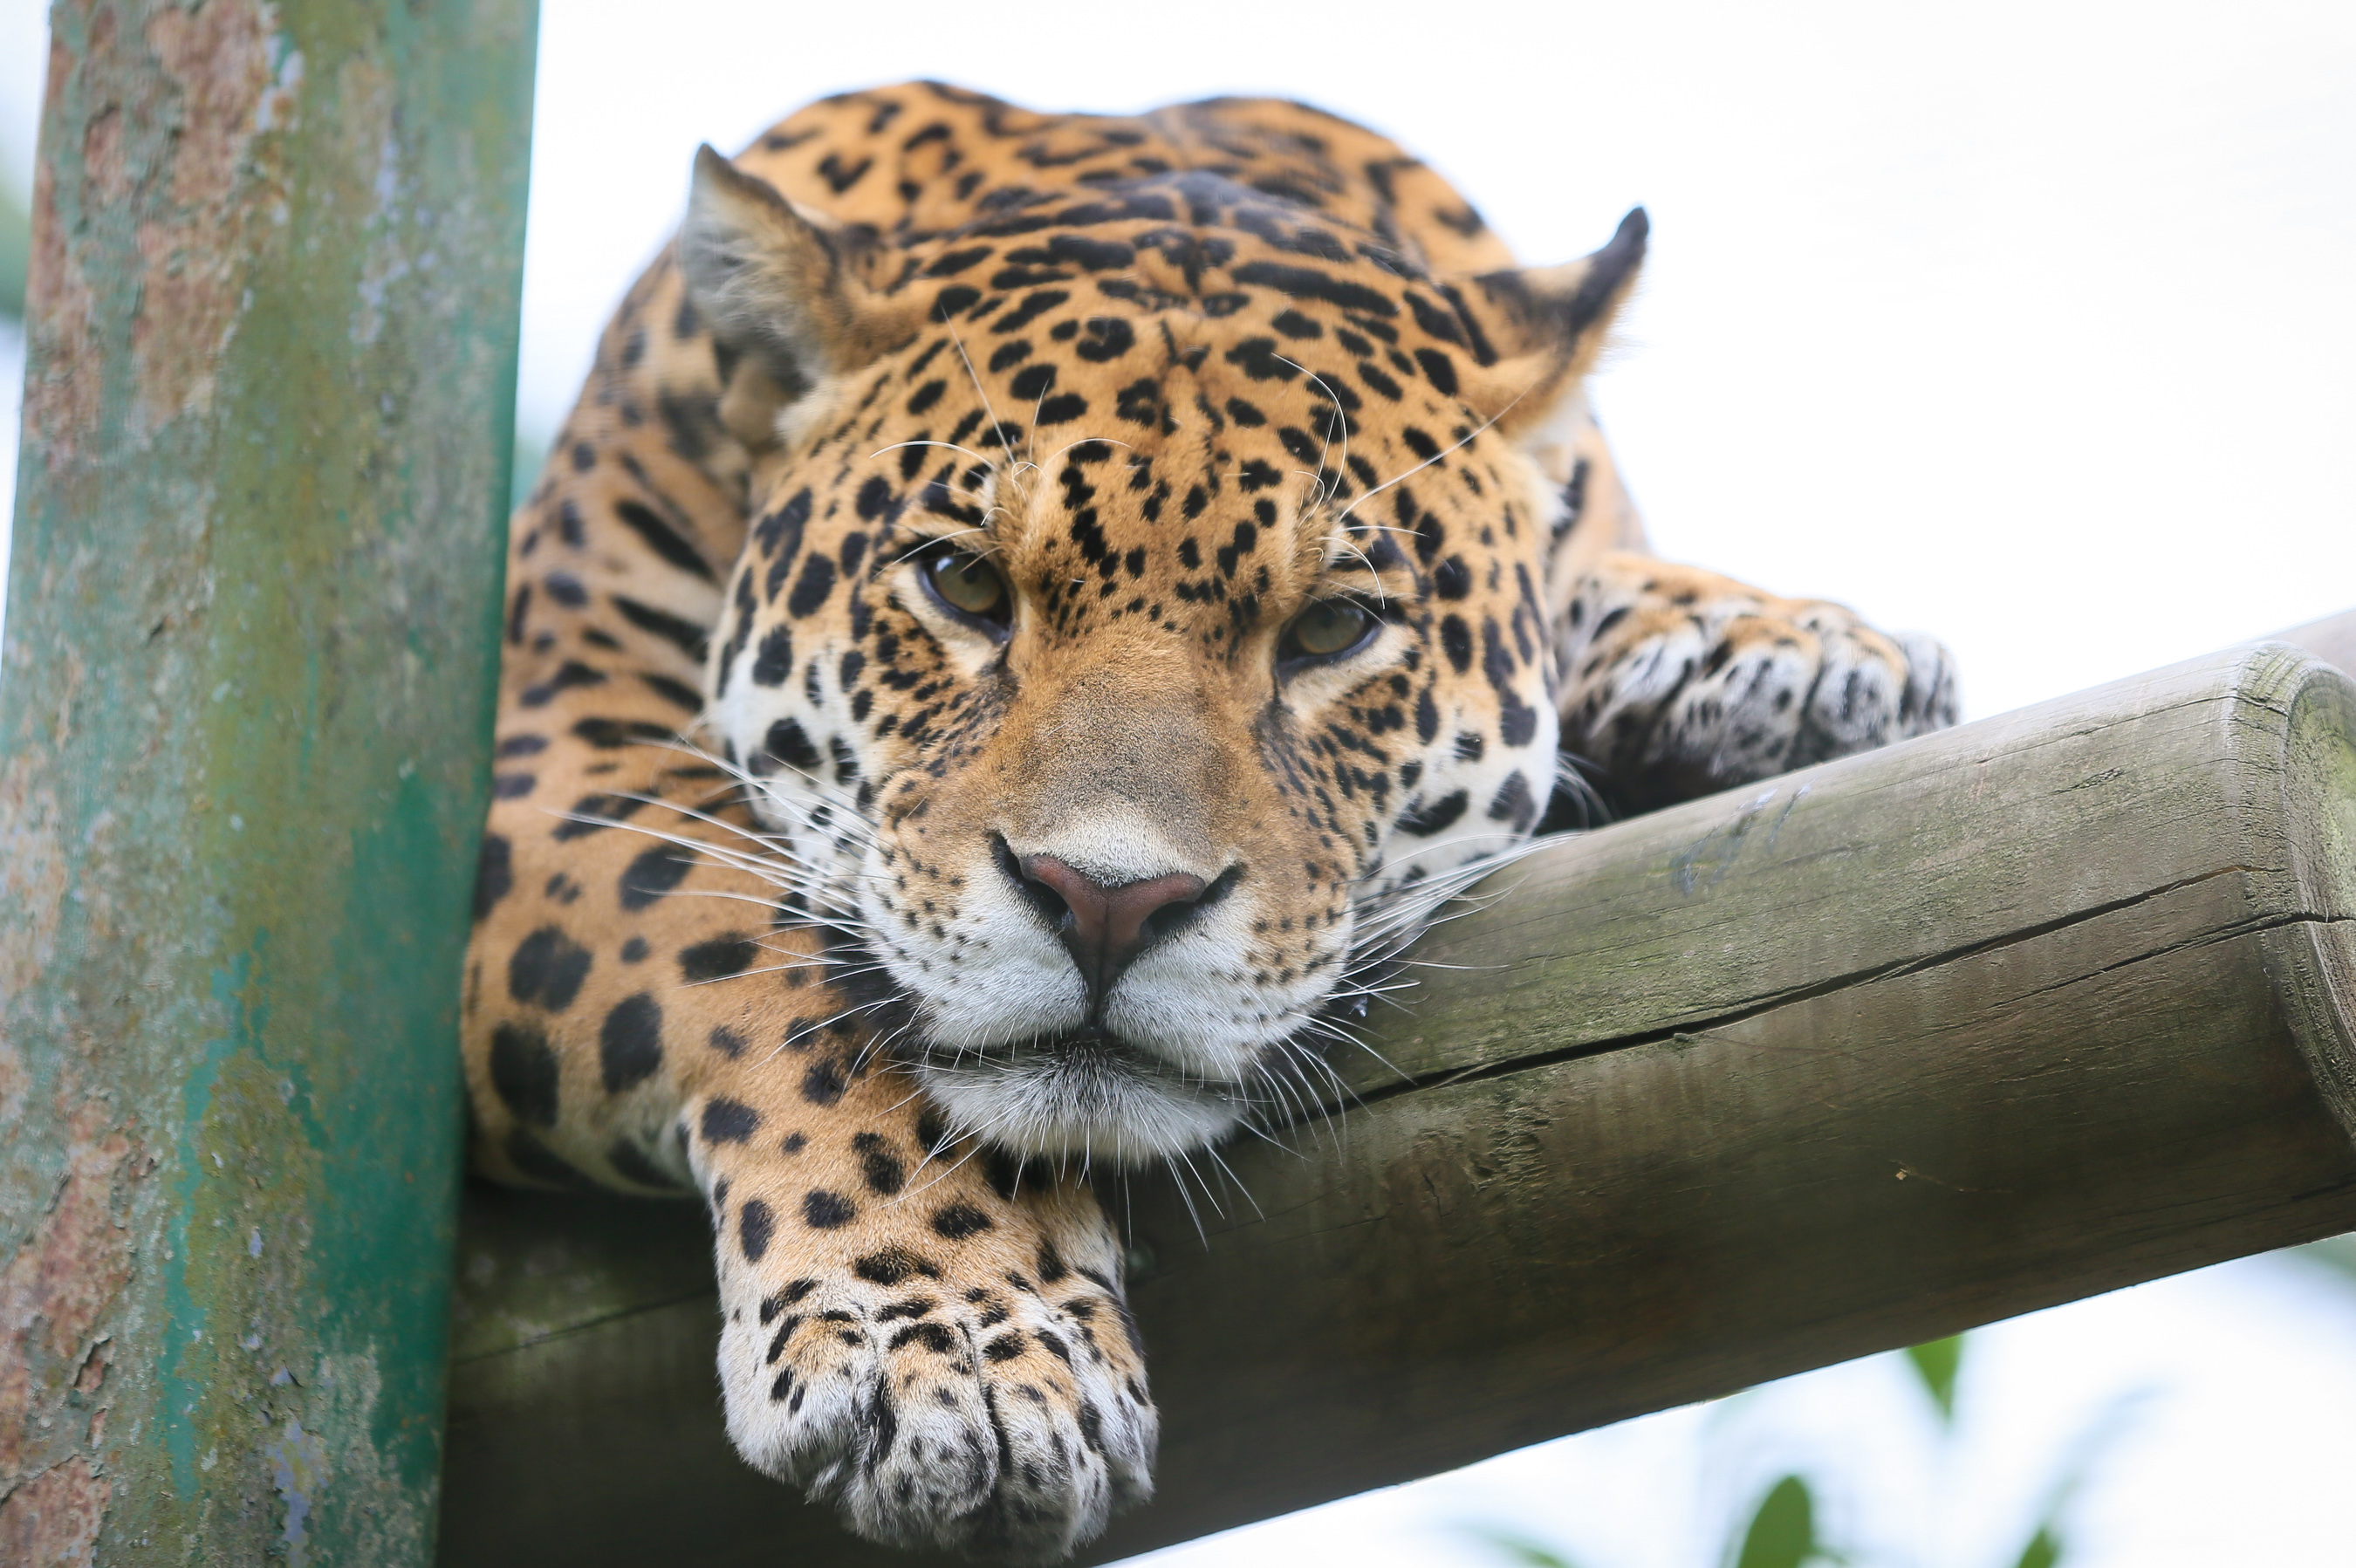 Jaguar Attacks Woman Who Climbed Zoo Barrier for Selfie